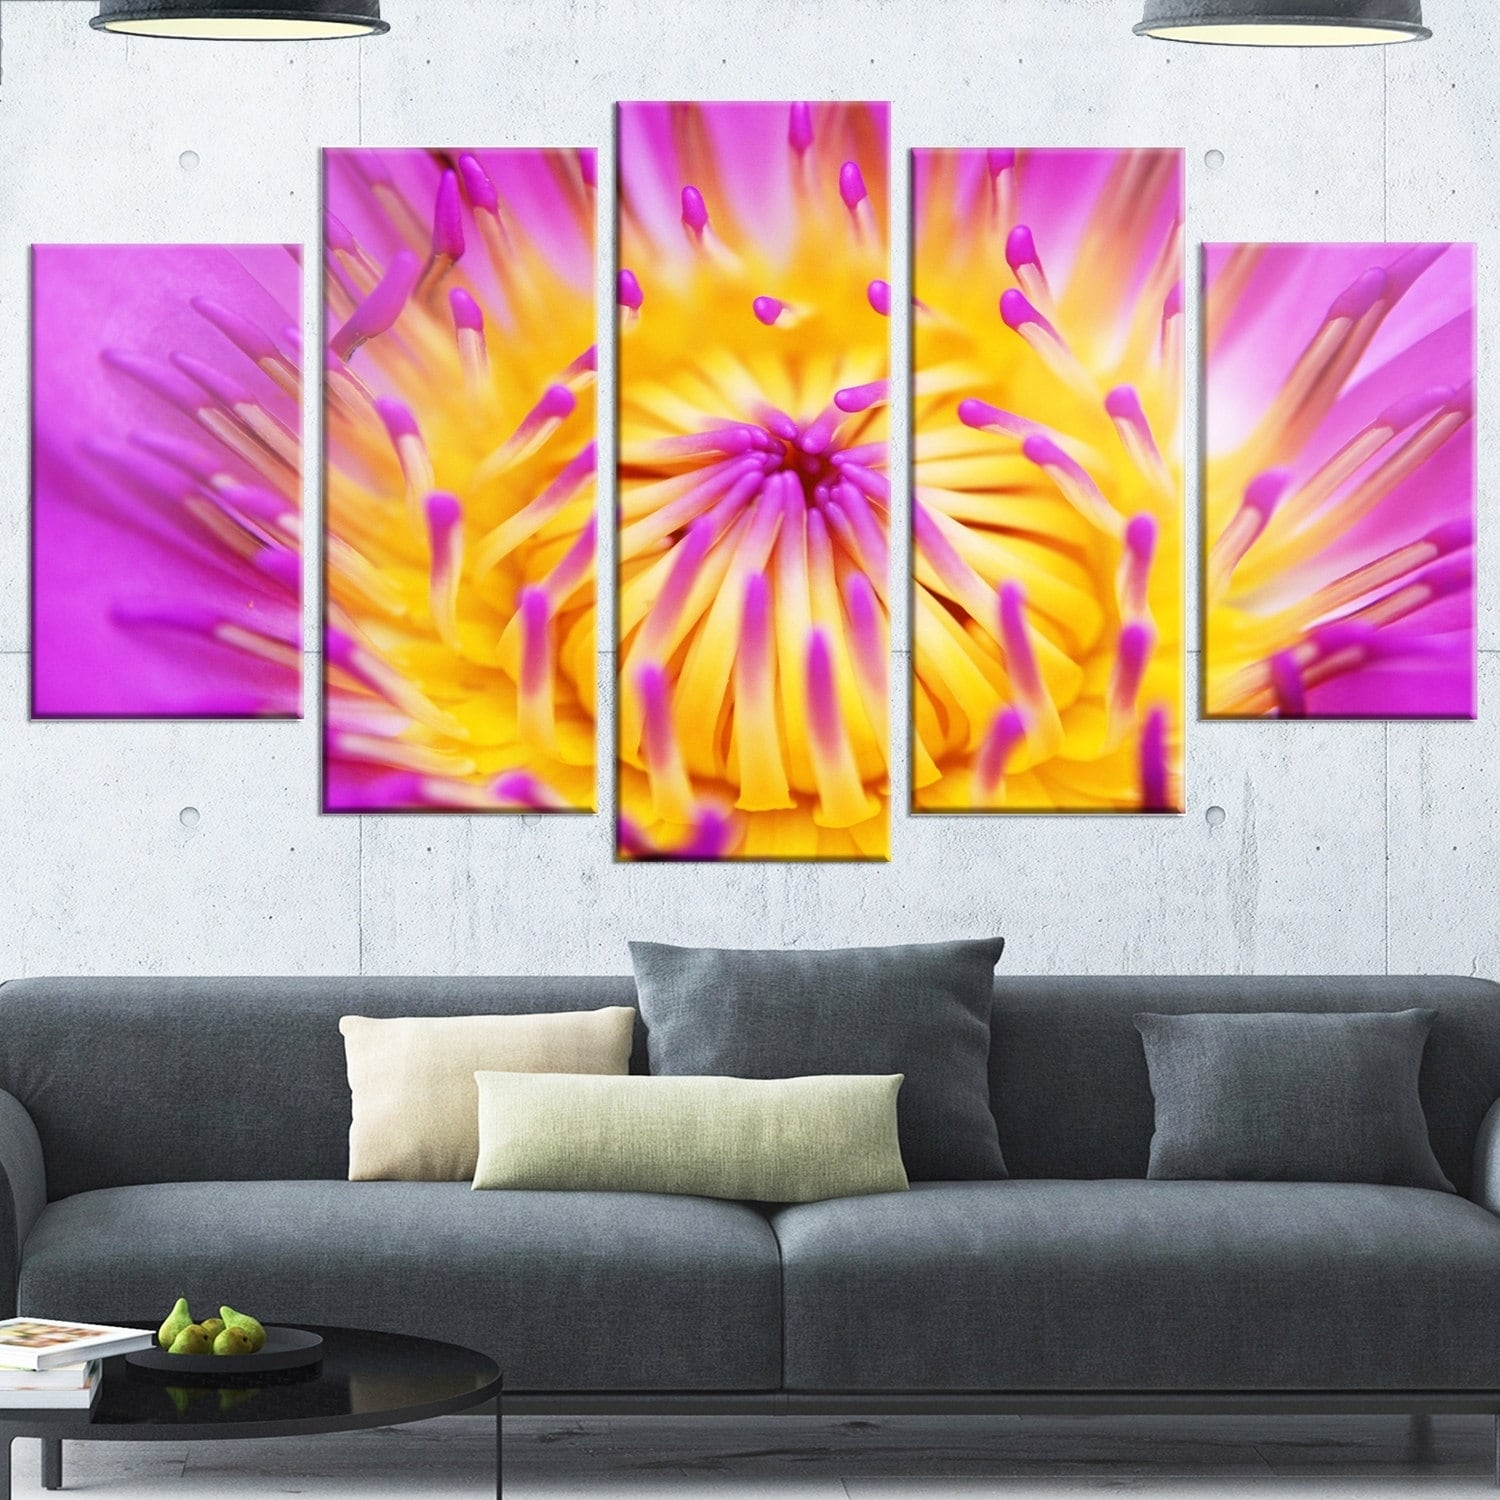 Magnificent Tie Dye Wall Art Motif - The Wall Art Decorations ...